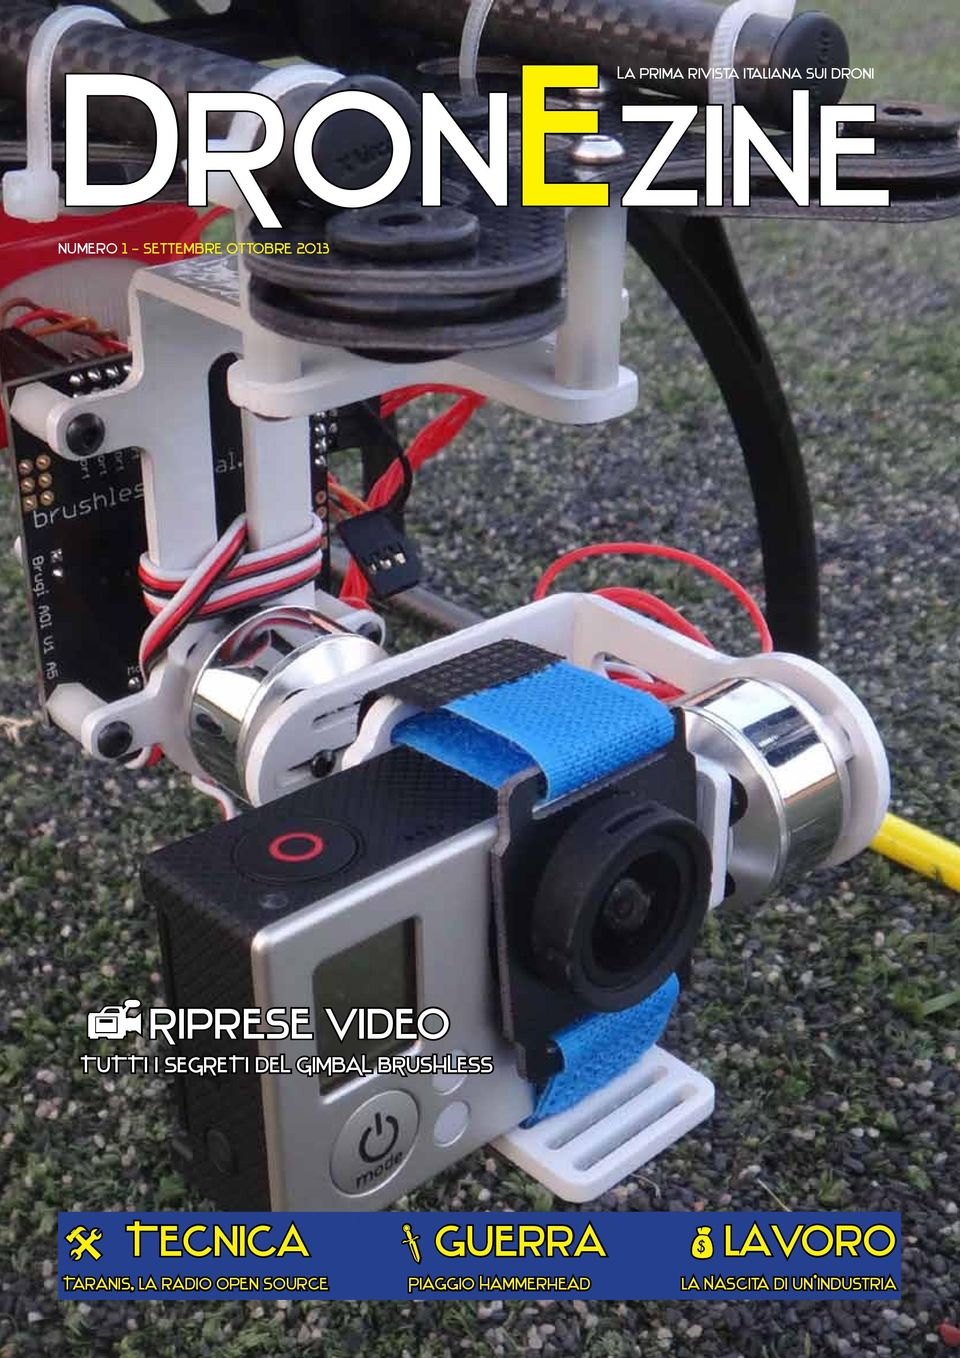 GIMBAL BRUSHLESS Tecnica Taranis, la radio open source